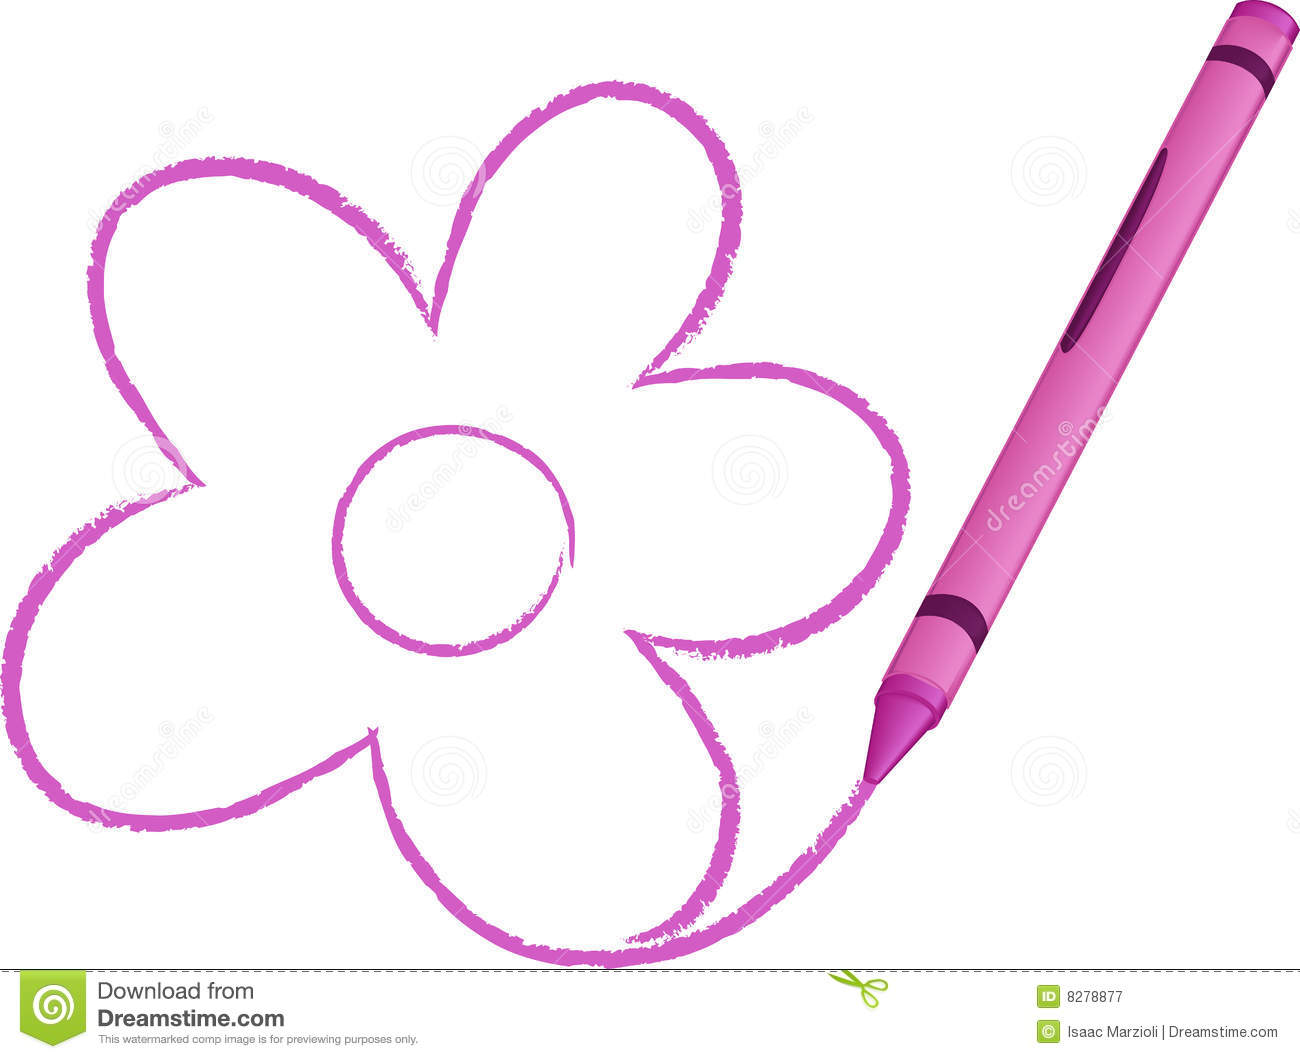 Crayon Drawn Flower Vector Illustration Royalty Free Stock Photography Image 8278877